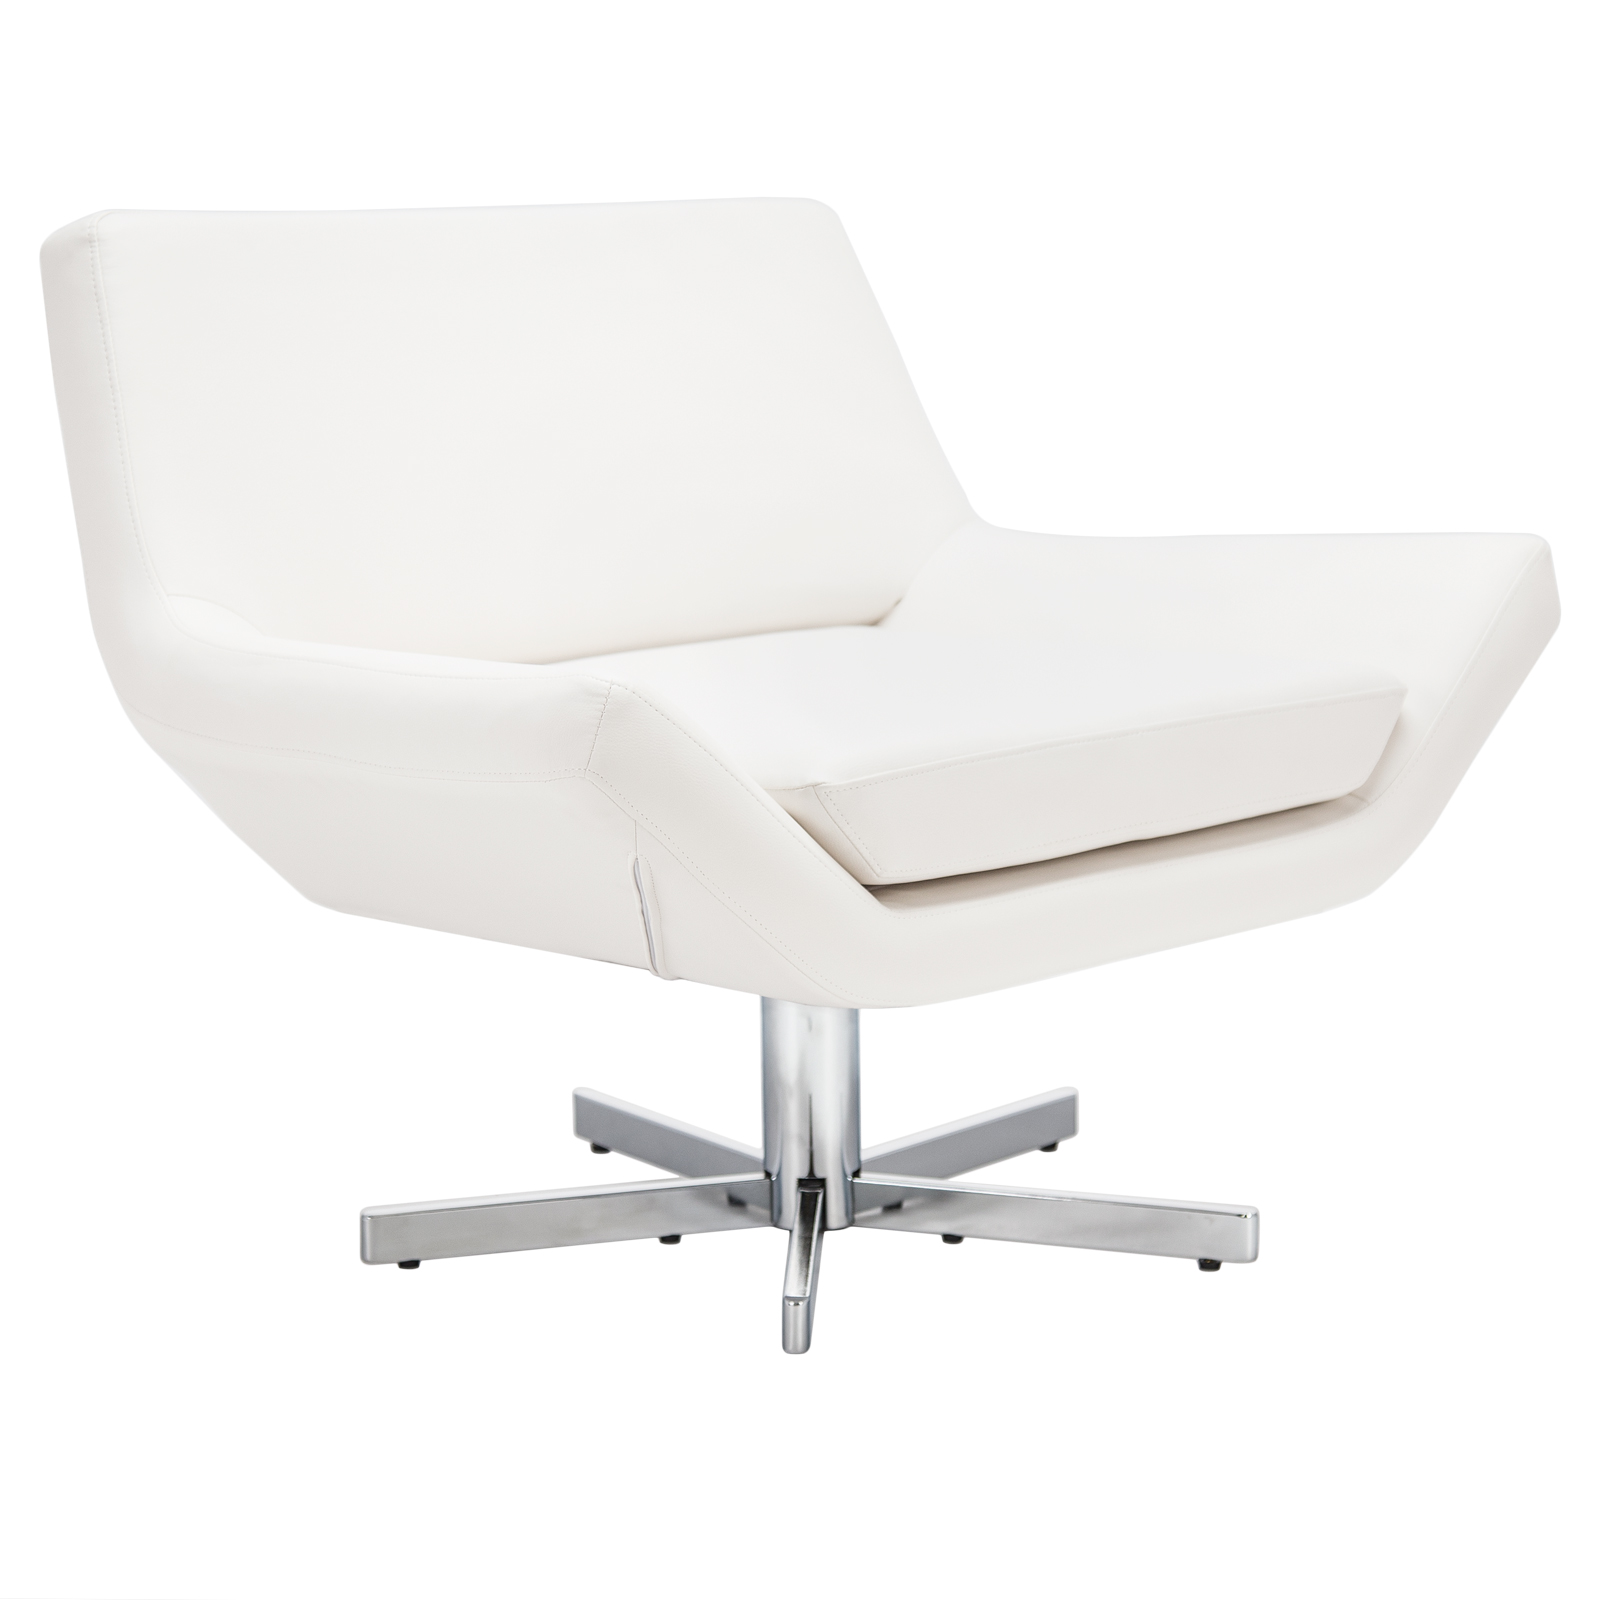 white chair rentals flexible folding lounge event furniture rental delivery